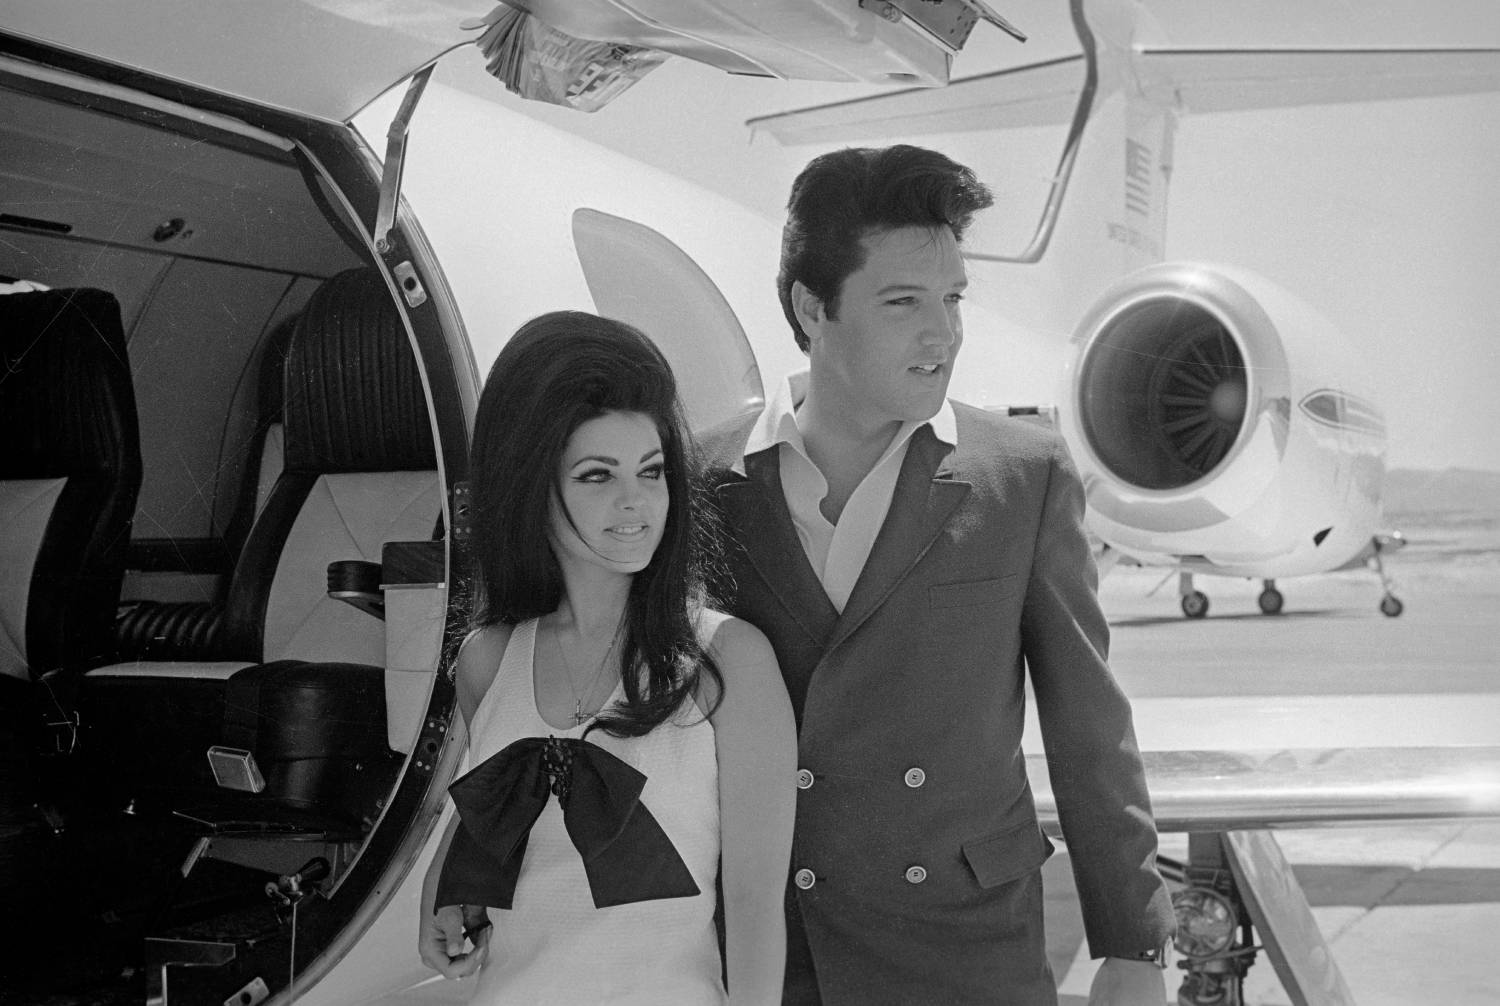 Newlyweds Elvis and Priscilla Presley, who met while Elvis was in the Army, prepare to board their private jet following their wedding at the Aladdin Resort and Casino in Las Vegas.